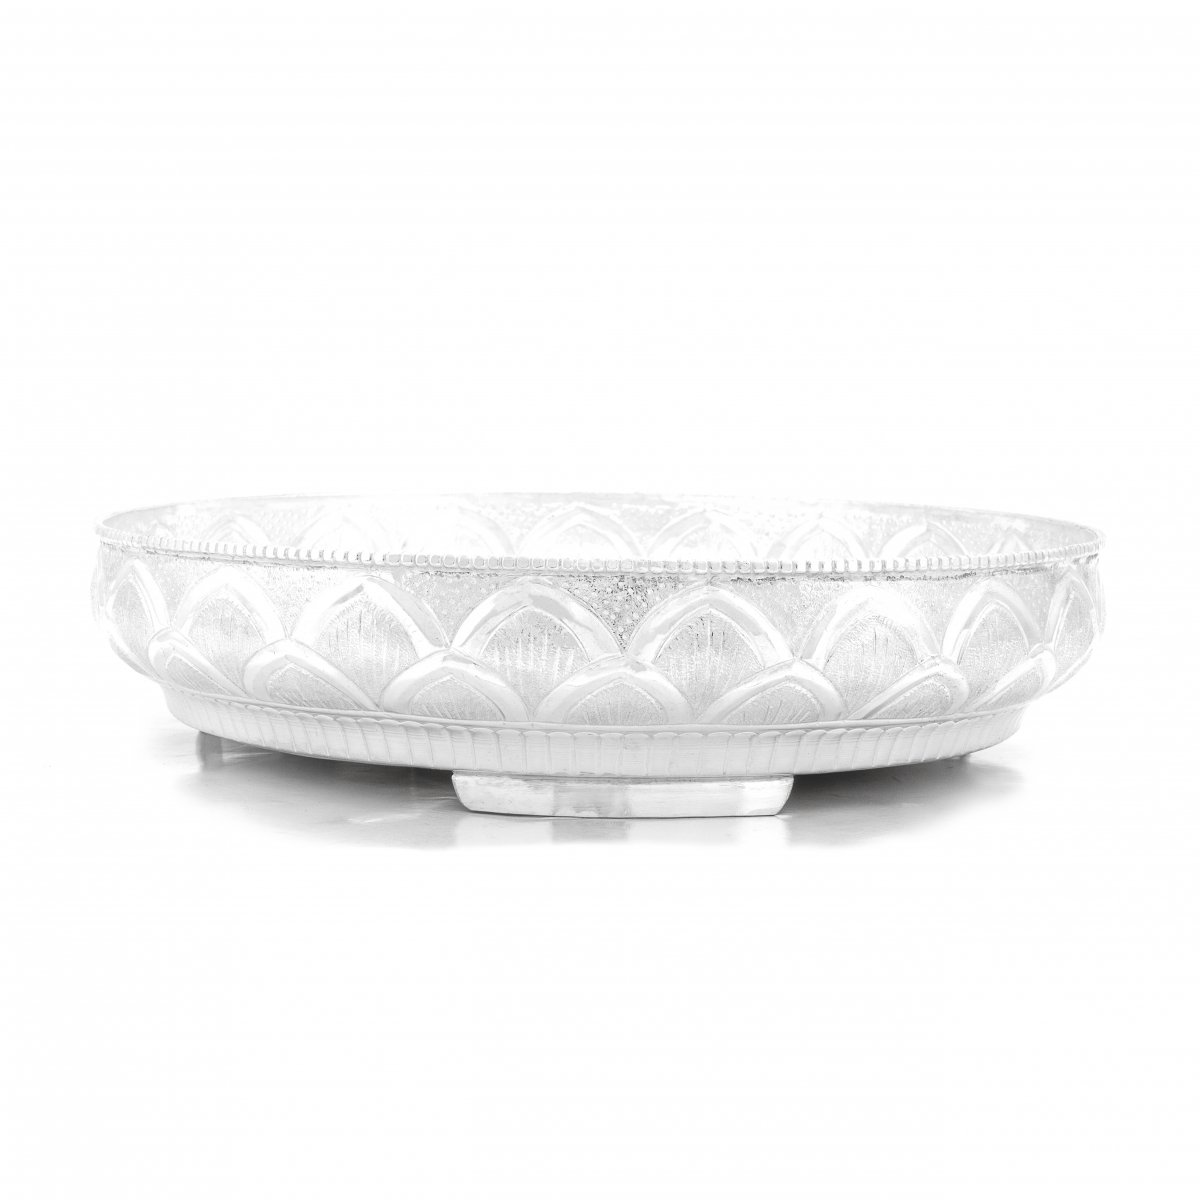 92.5 SILVER  NAGAS DESIGN HAND CRAFTED PLATE